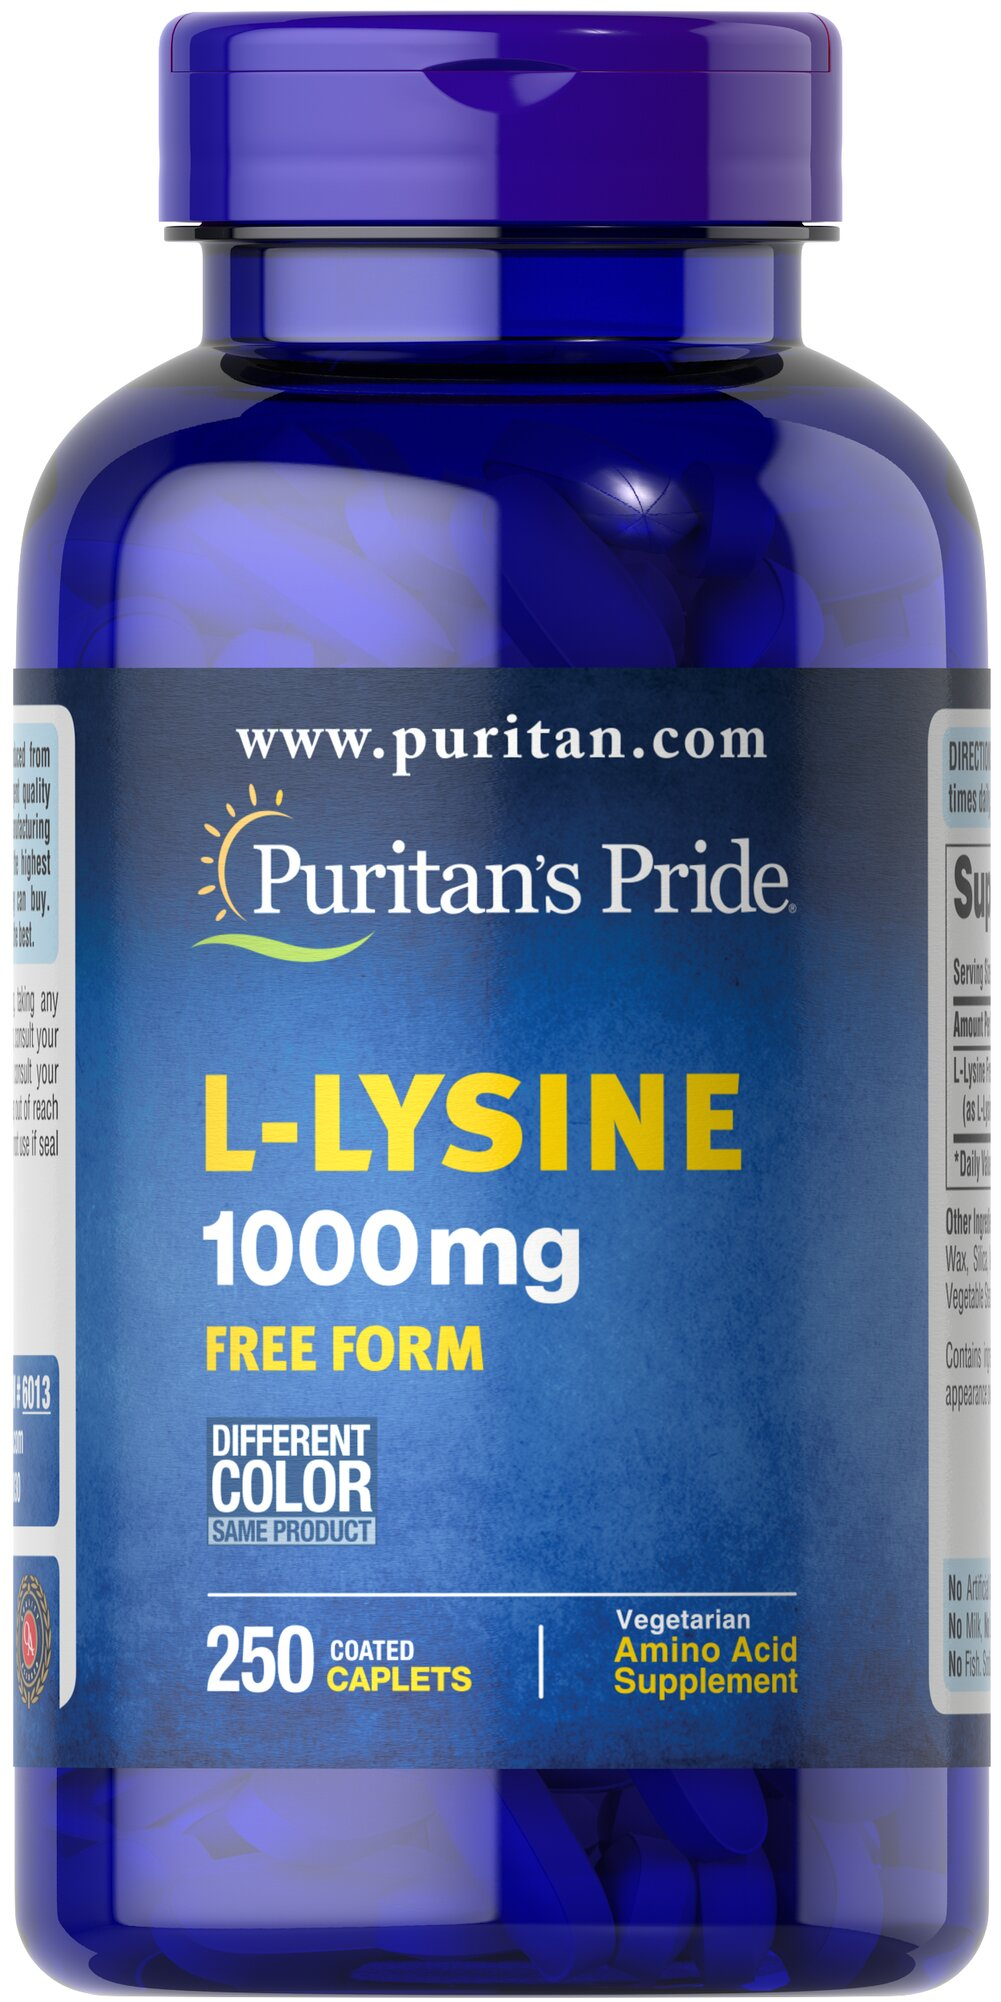 L-Lysine 1000 mg <p>For Balanced Nutrition and Health**</p><p>Lysine is an indispensable amino acid that cannot be made by the body.** Amino acids form the basis for protein, which helps construct and maintain the critical structures in the body.** Lysine is also used for the health and integrity of skin.**</p> 250 Tablets 1000 mg $27.79